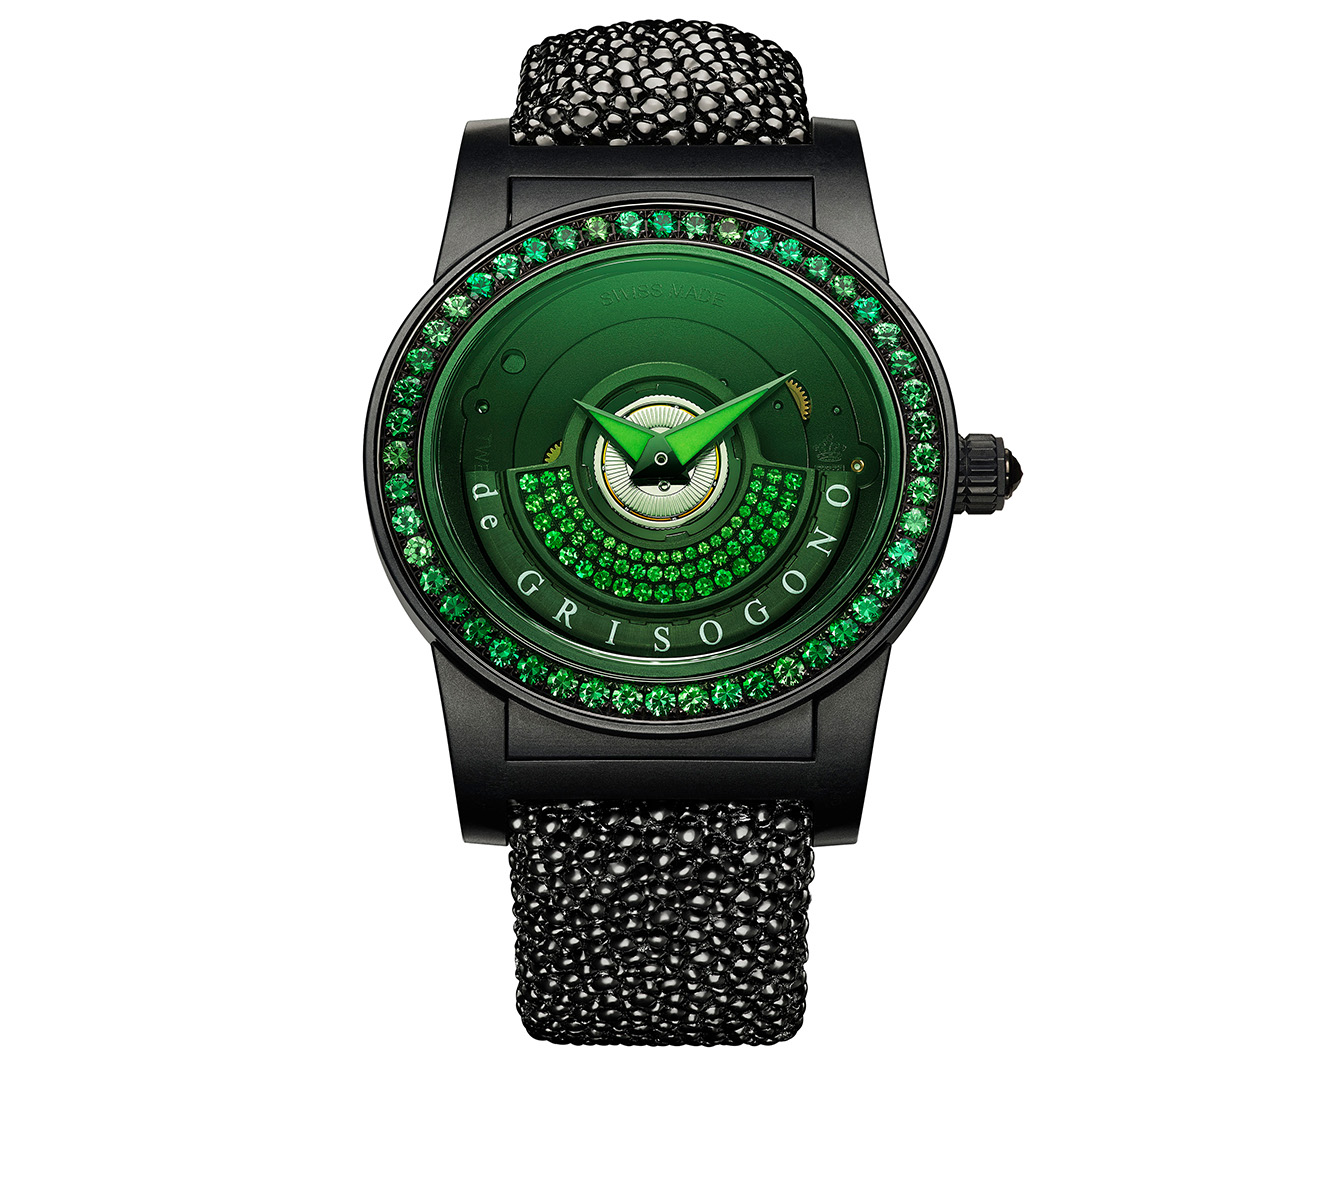 Часы Green Black de GRISOGONO Tondo By Night TONDO BY NIGHT S13 GV - фото 1 – Mercury